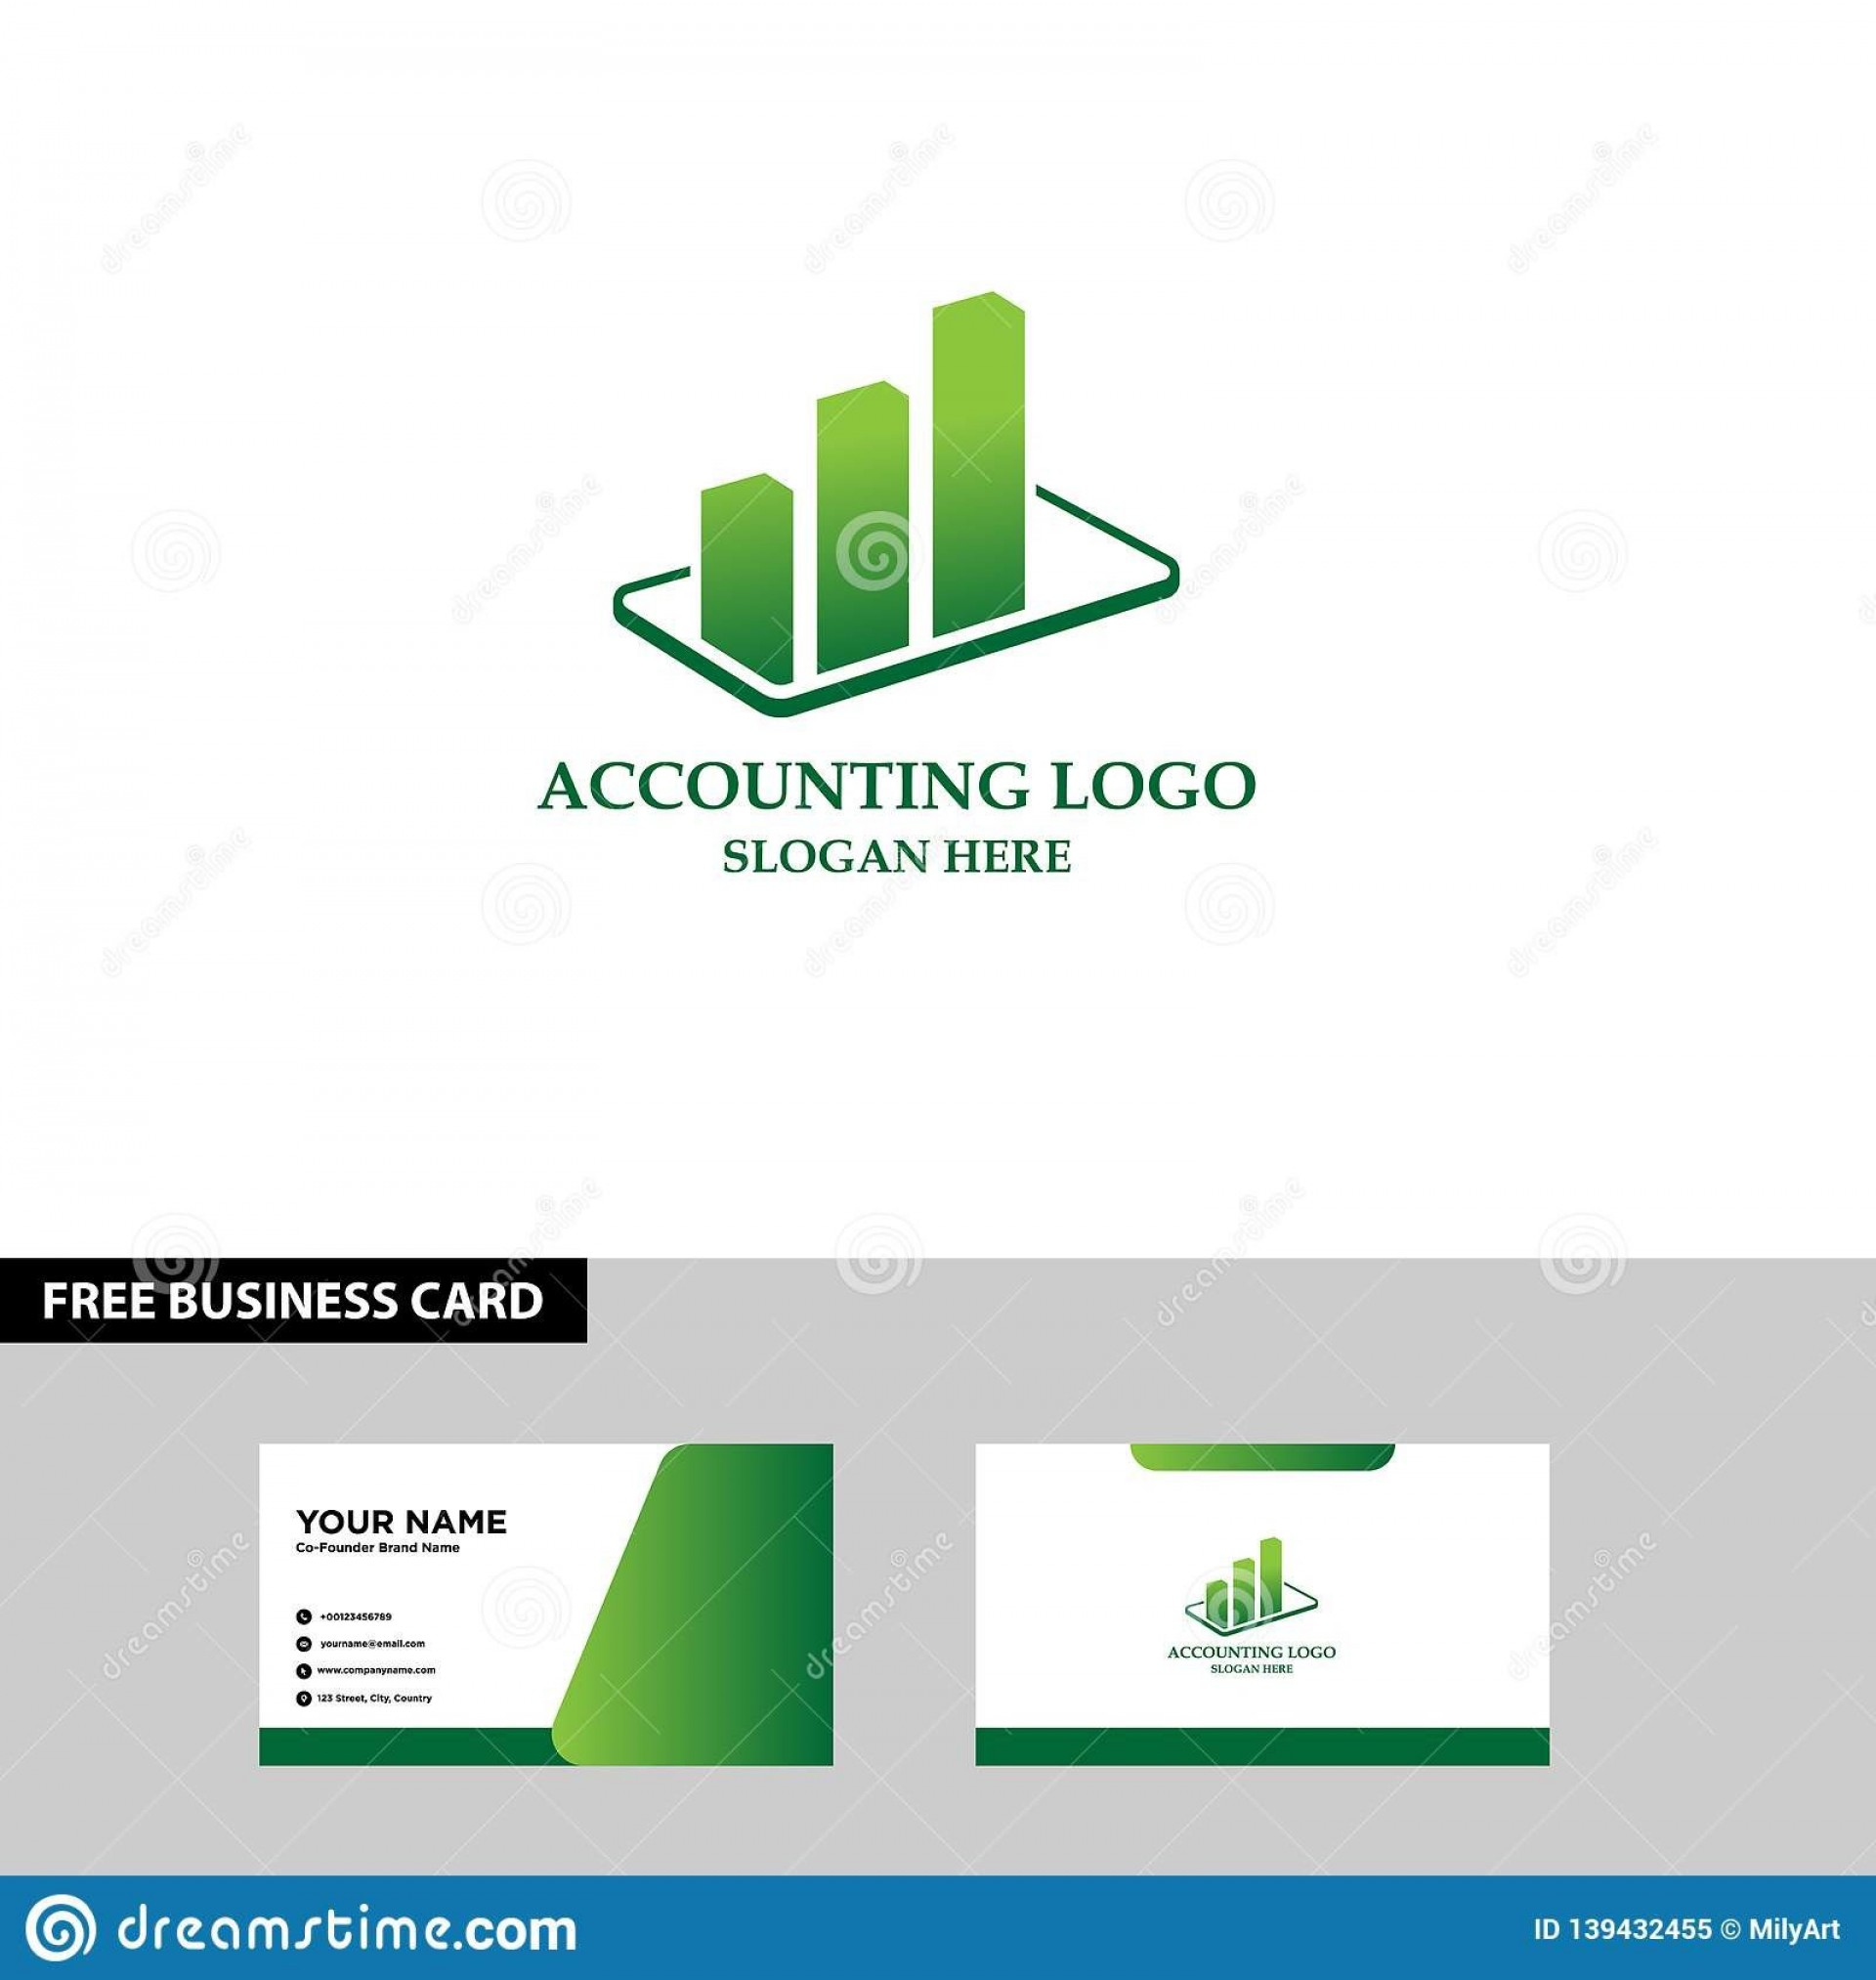 004 Outstanding Free Busines Logo Template Photo  Templates Design Download Powerpoint1920